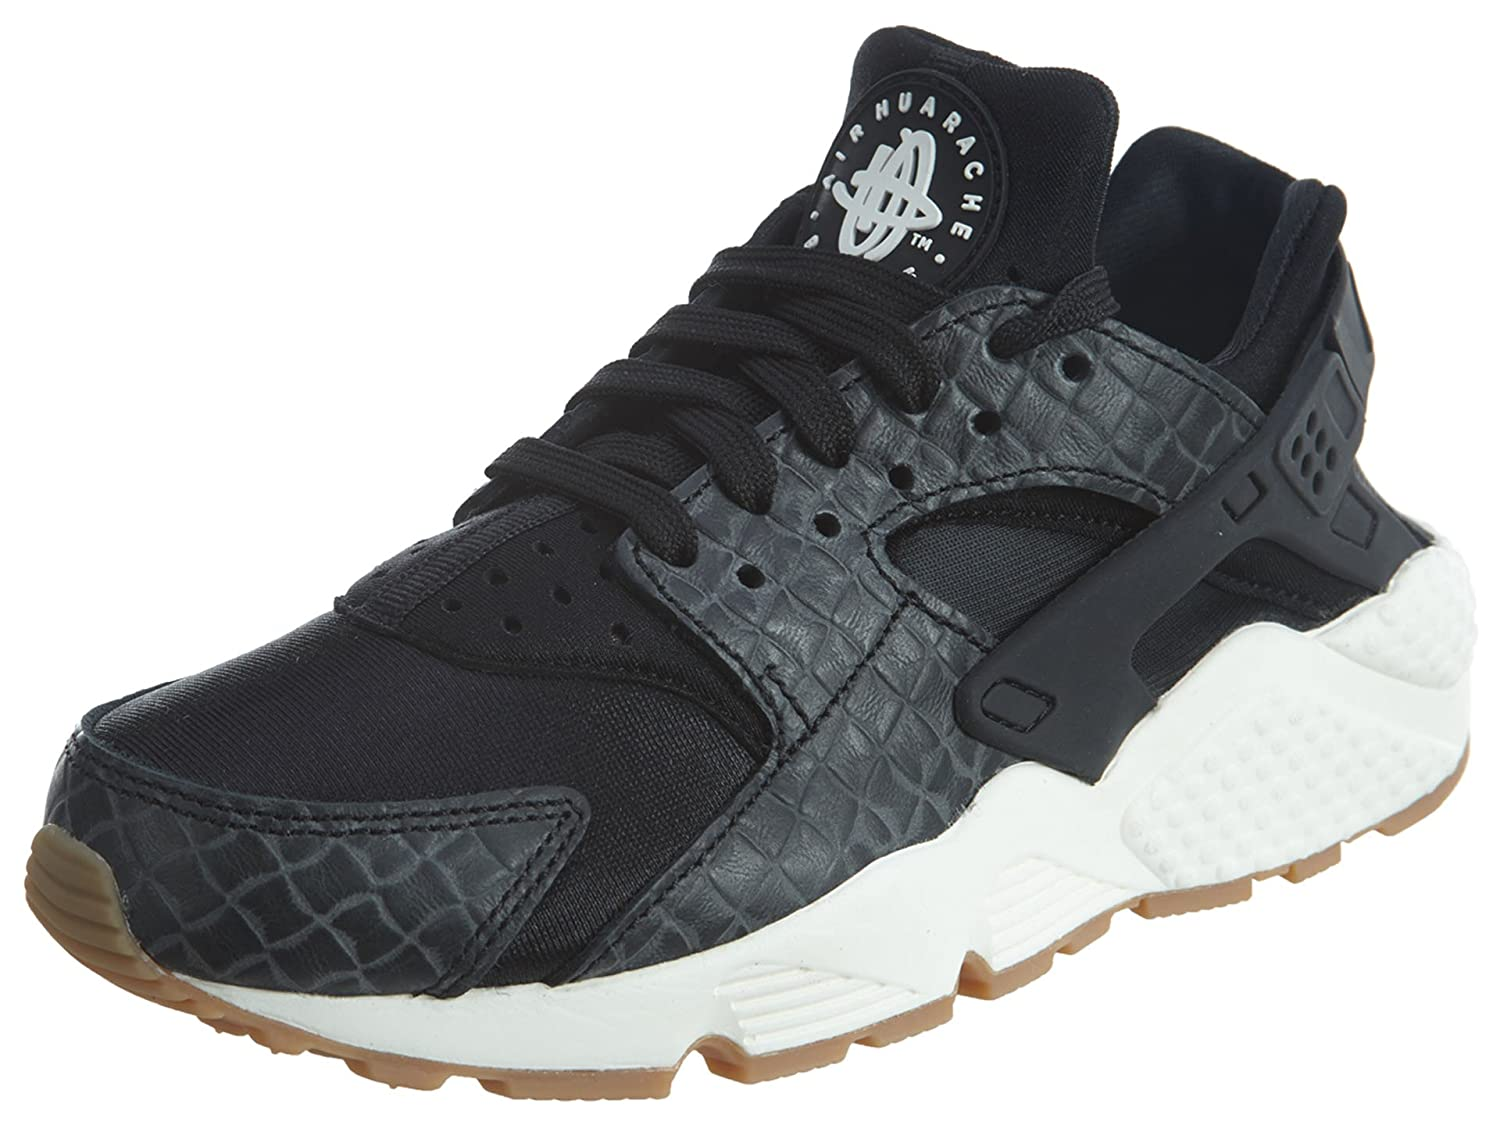 388c5ad7046f 683818-011 WOMEN WMNS AIR HUARACHE RUN PRM NIKE BLACK SAIL GUM MED BROWN  SIZE 8  Buy Online at Low Prices in India - Amazon.in